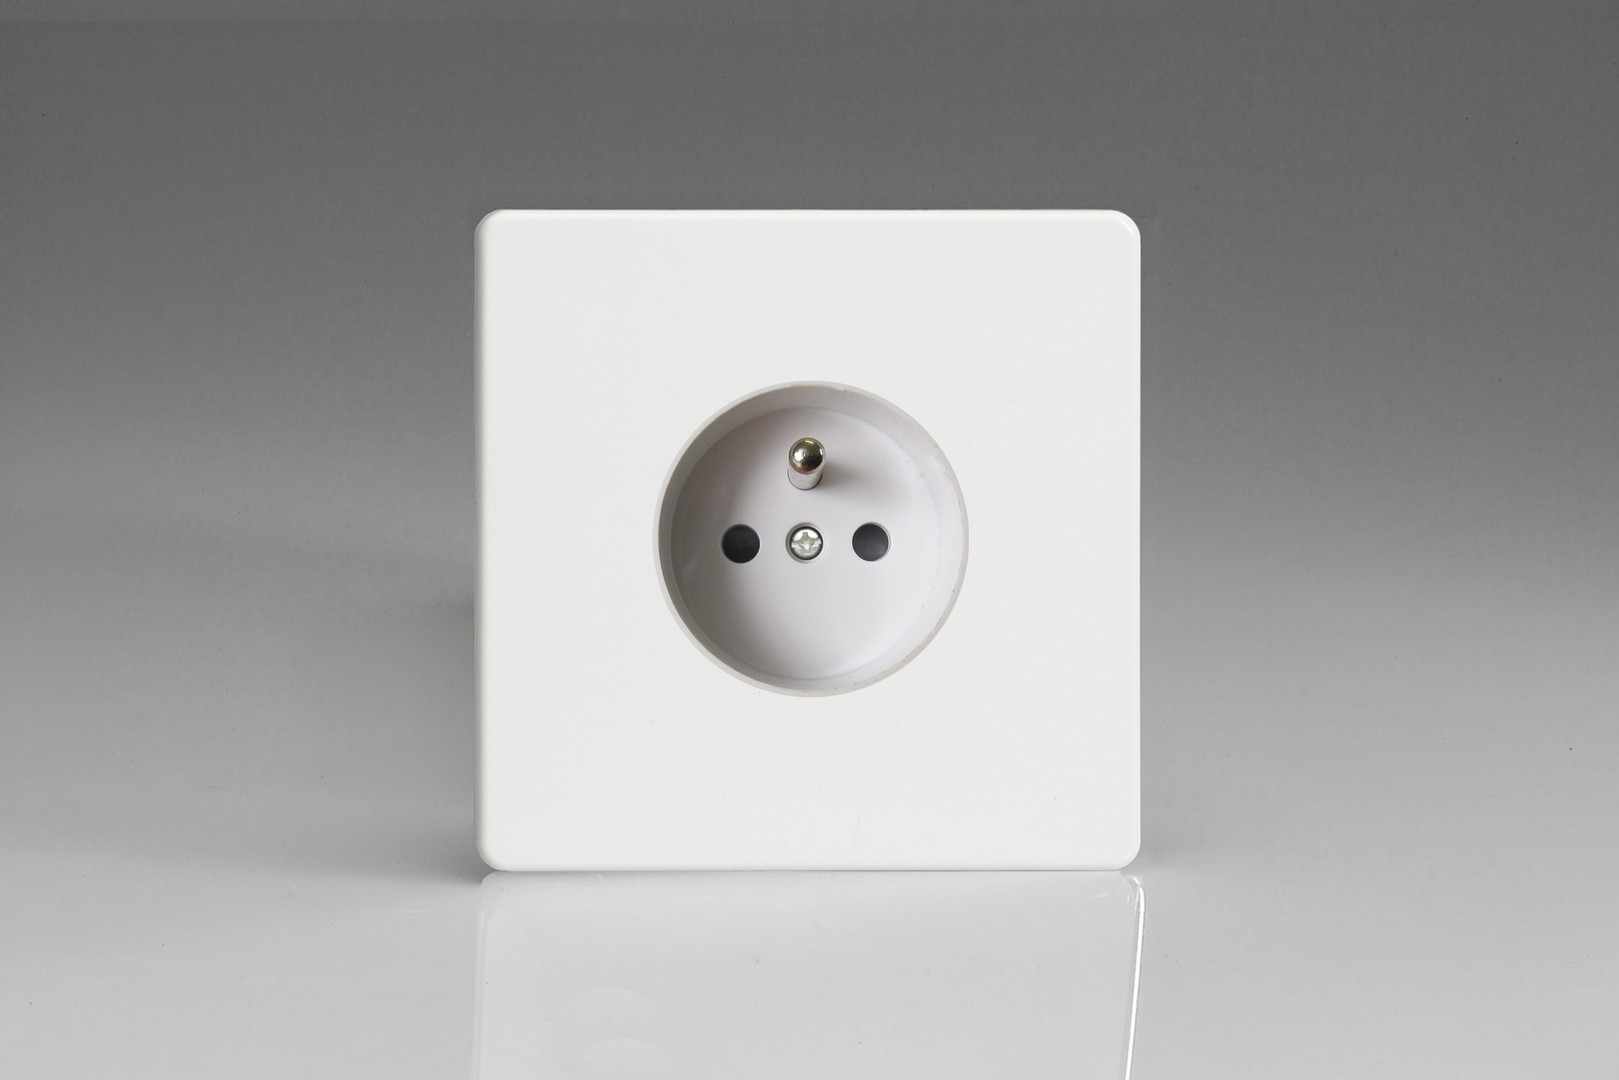 XEQ4FW Varilight European 1 Gang (Single), Euro (Pin Earth) Socket, Dimension Screwless Premium White